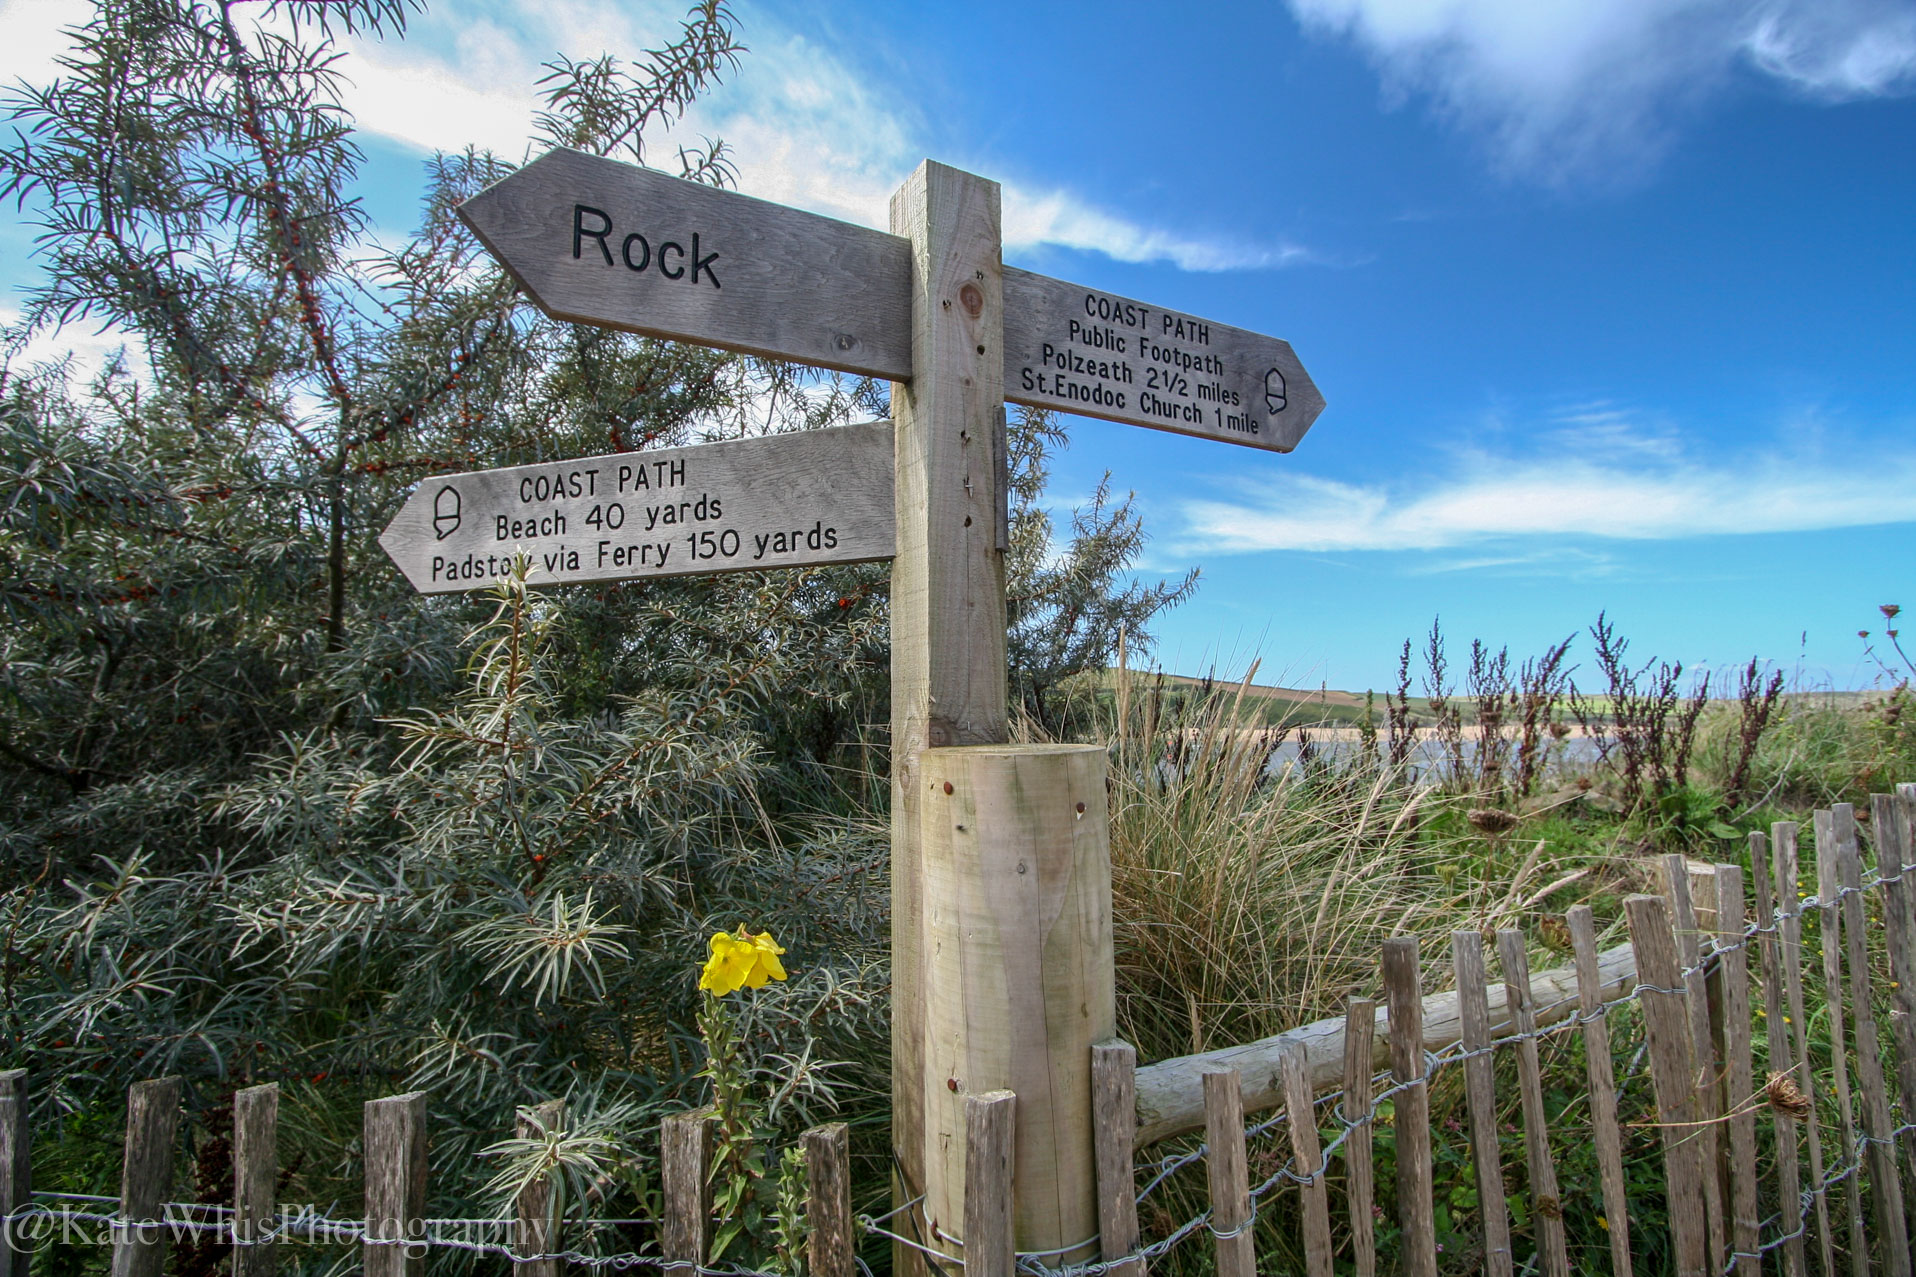 Footpath sign at Rock